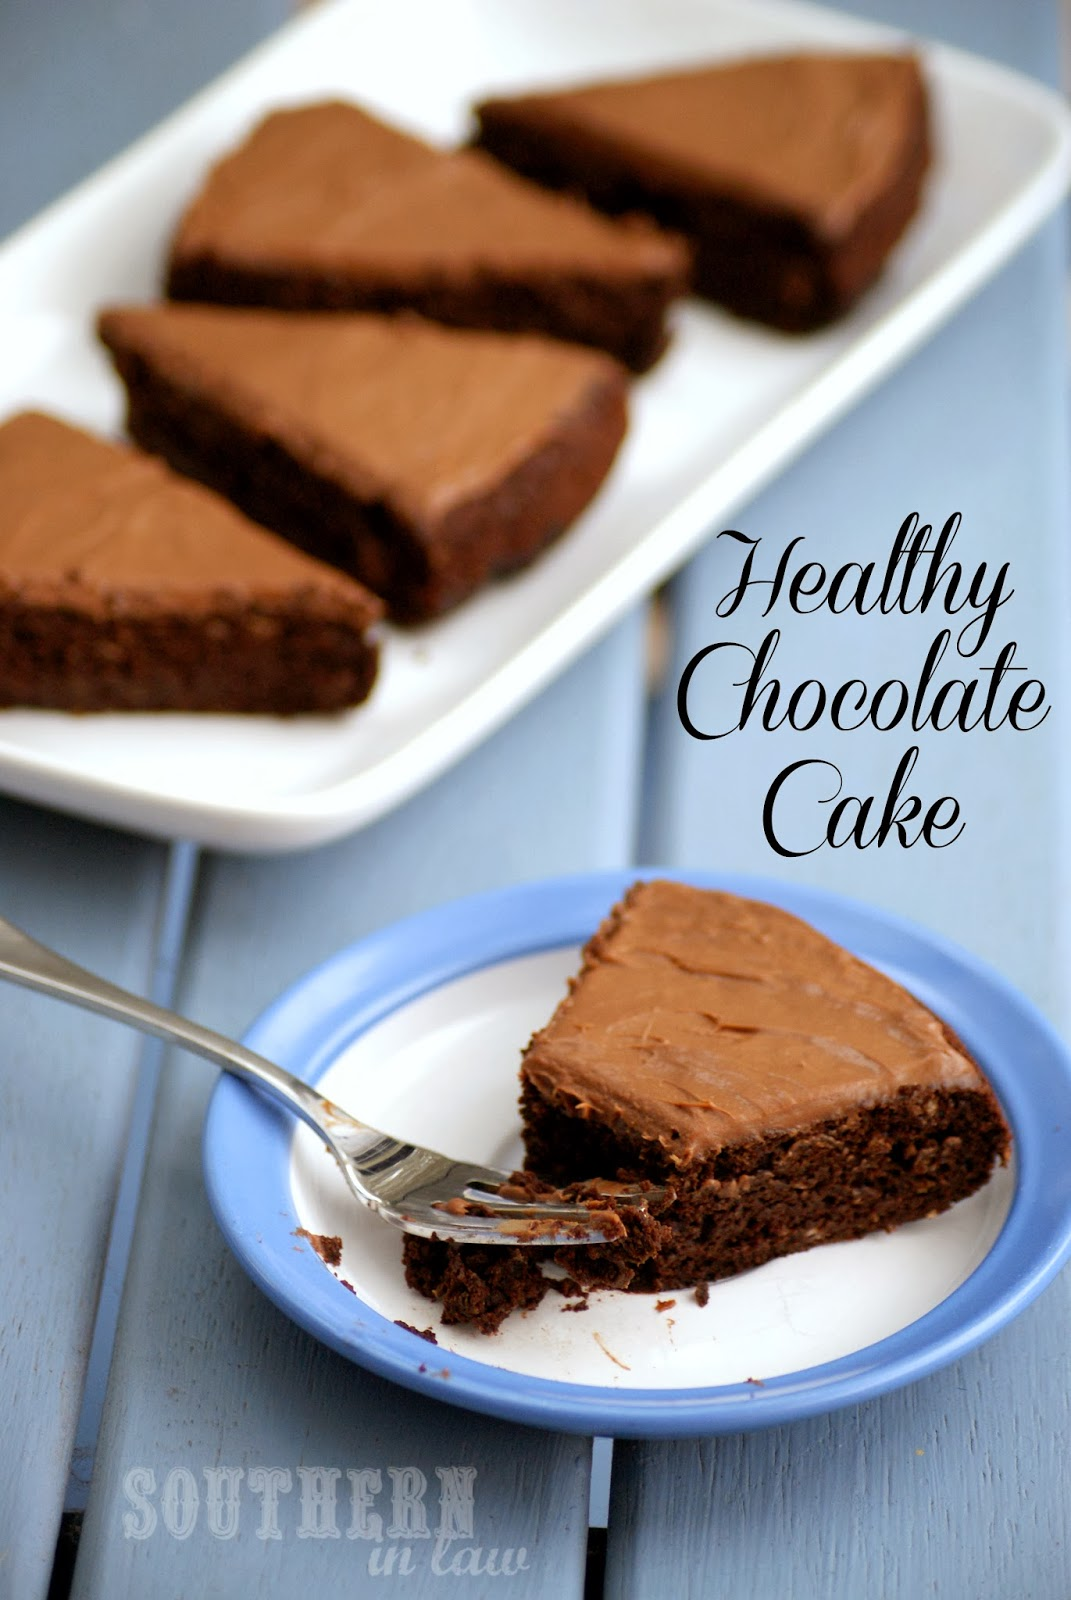 Chocolate Cake Day - Healthy Chocolate Cake Recipes